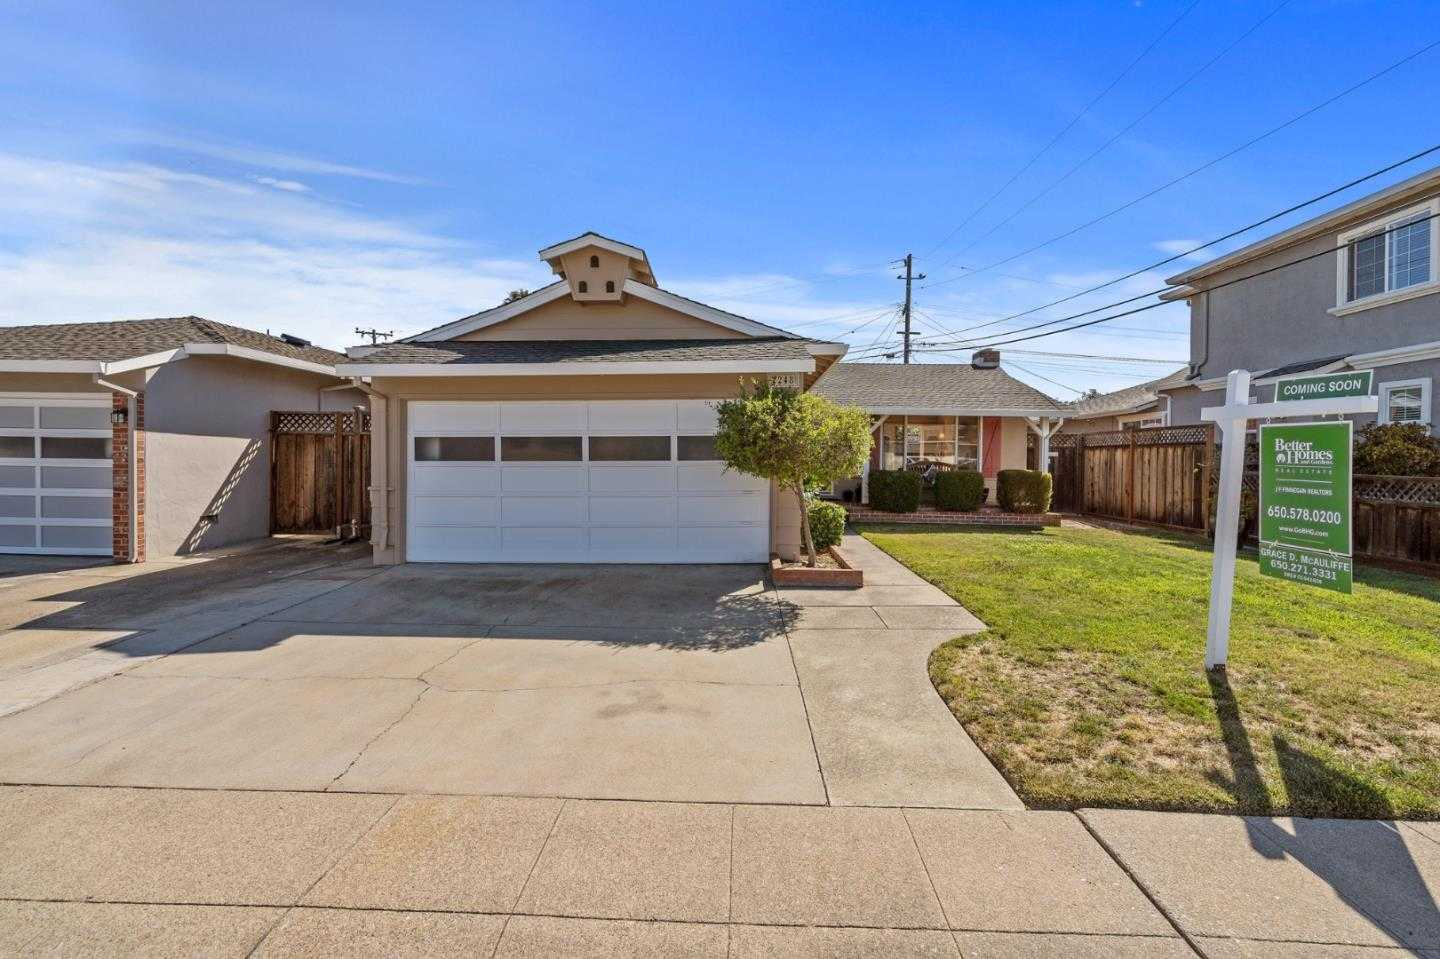 $1,450,000 - 3Br/2Ba -  for Sale in San Mateo